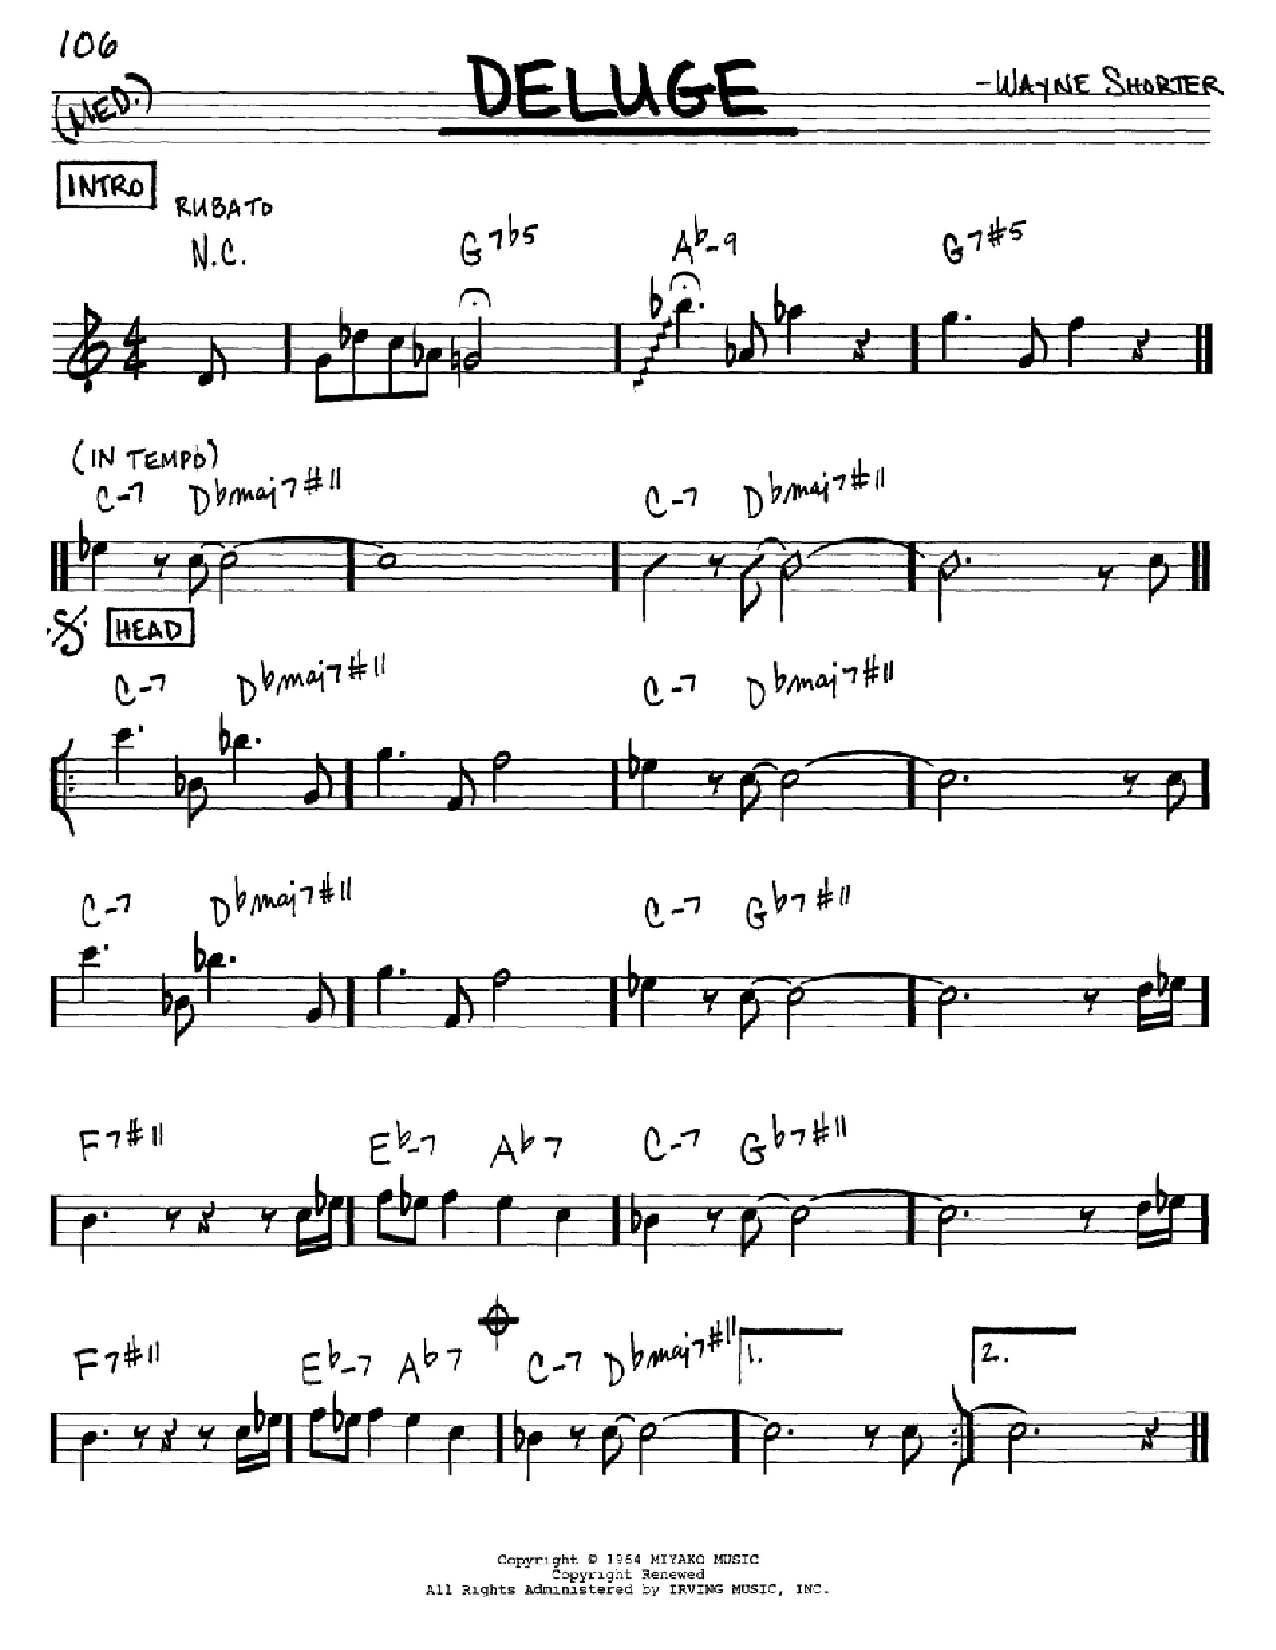 Deluge Sheet Music